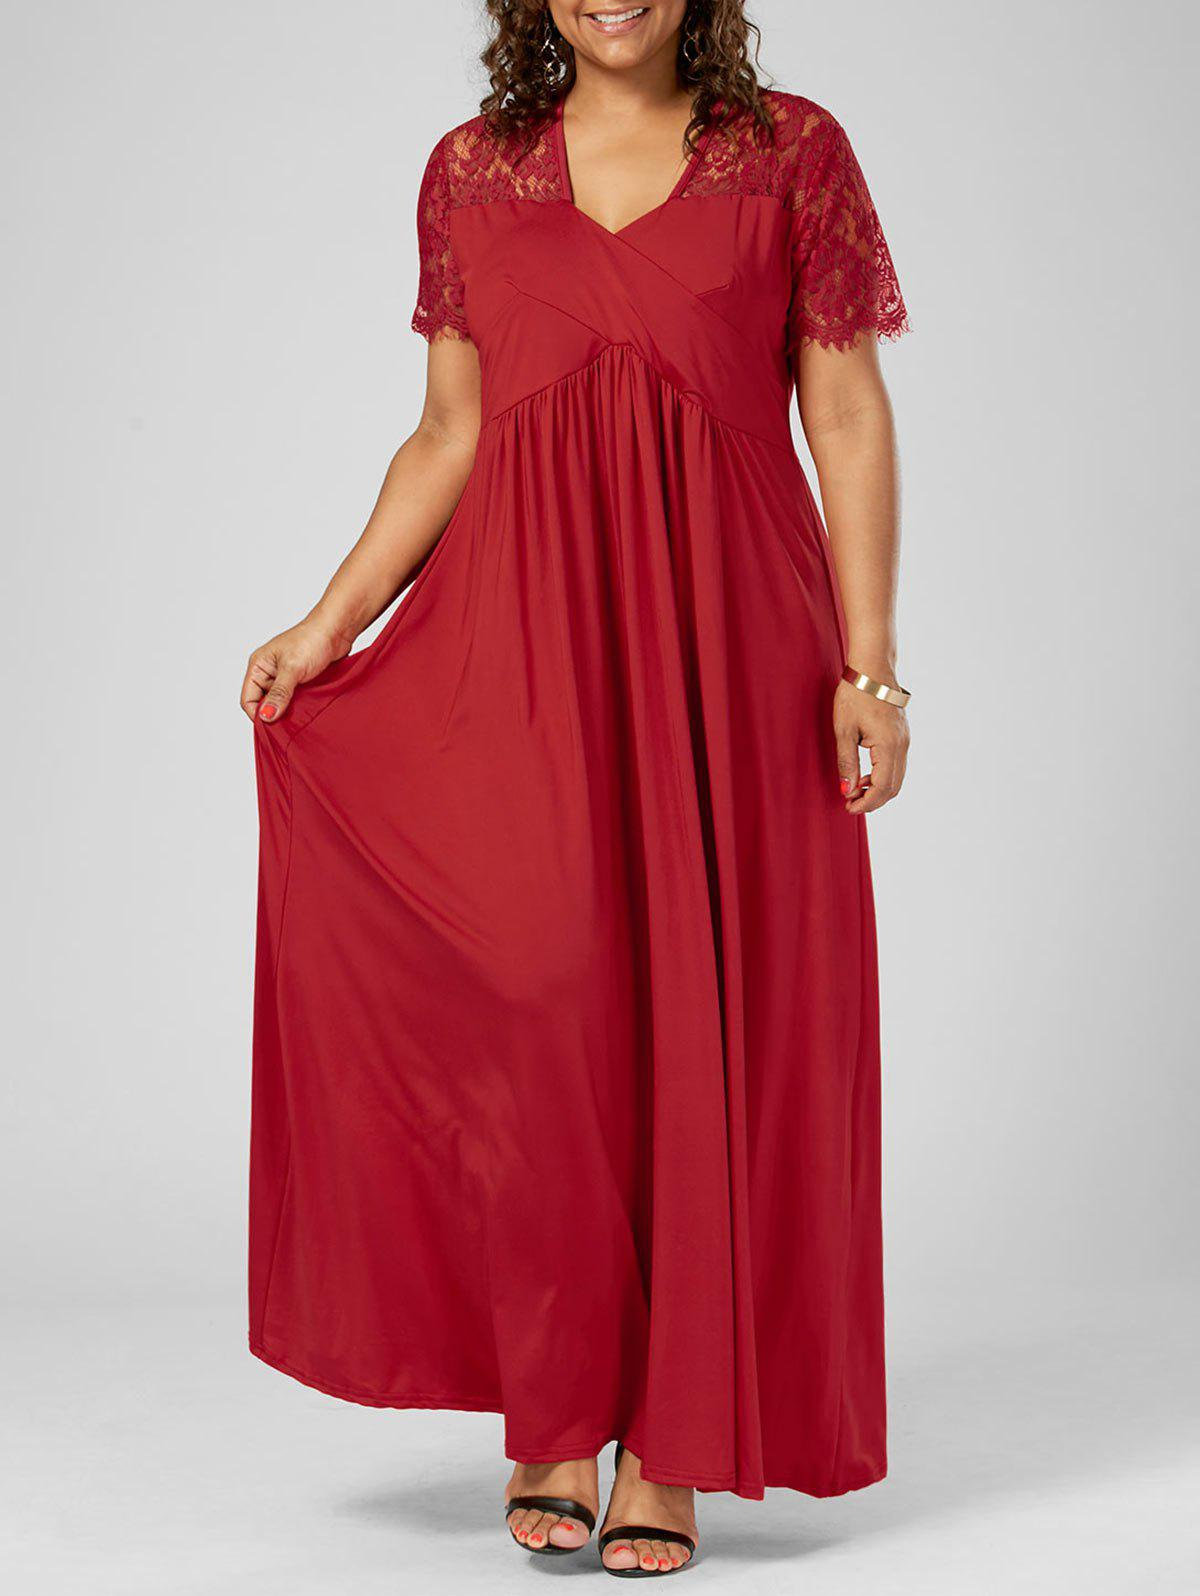 Plus Size Lace Insert Maxi Formal Dress with SleevesWOMEN<br><br>Size: 5XL; Color: RED; Style: Brief; Material: Polyester; Silhouette: A-Line; Dresses Length: Floor-Length; Neckline: V-Neck; Sleeve Length: Short Sleeves; Pattern Type: Solid Color; With Belt: No; Season: Summer; Weight: 0.6000kg; Package Contents: 1 x Dress;